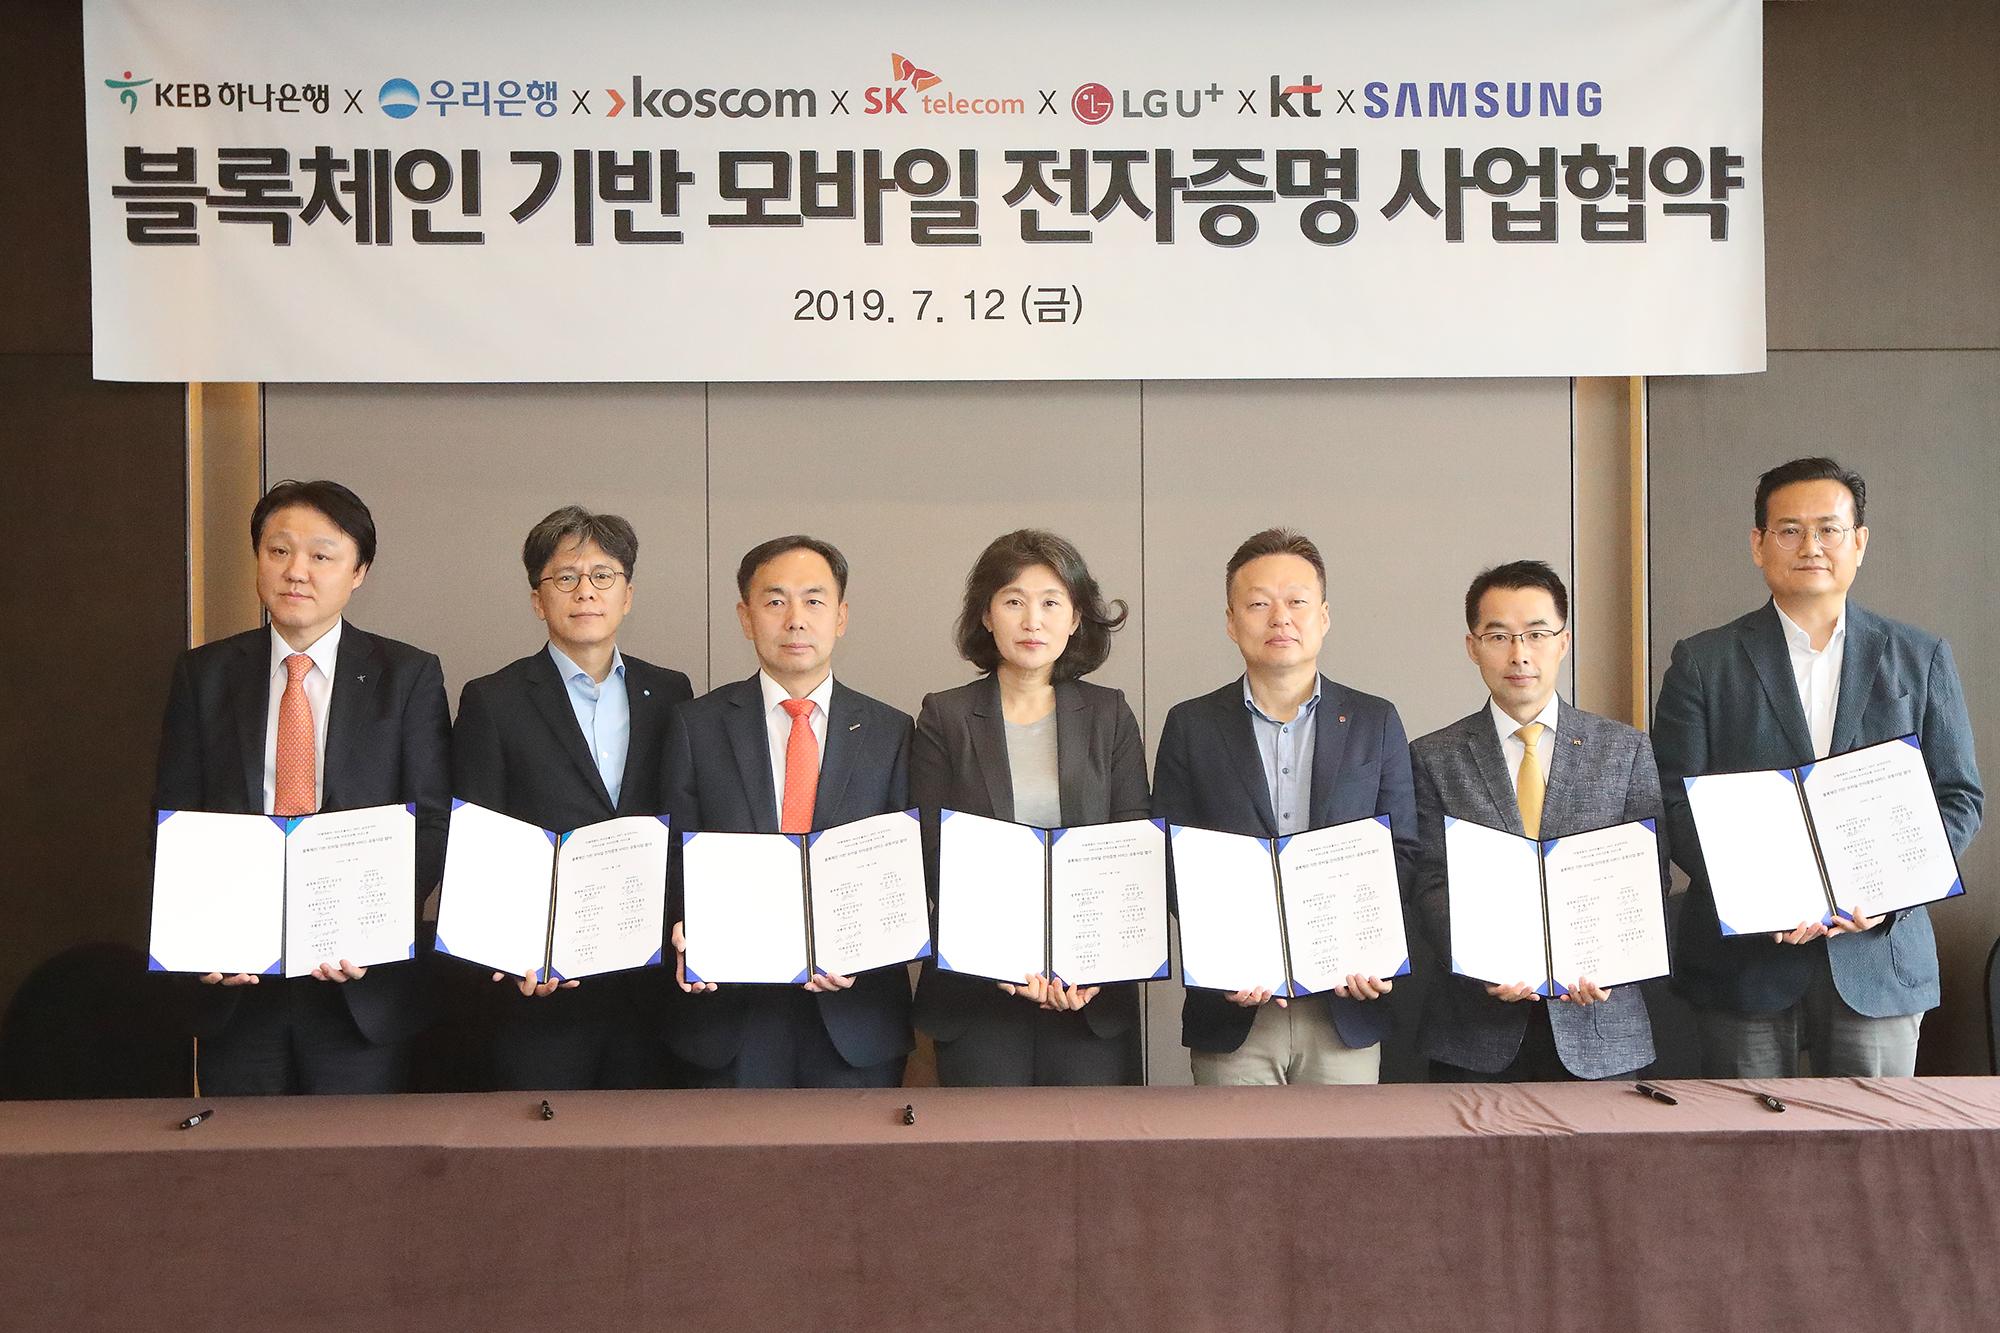 8 firms launch blockchain-based 'self-identifier' project | 블록미디어